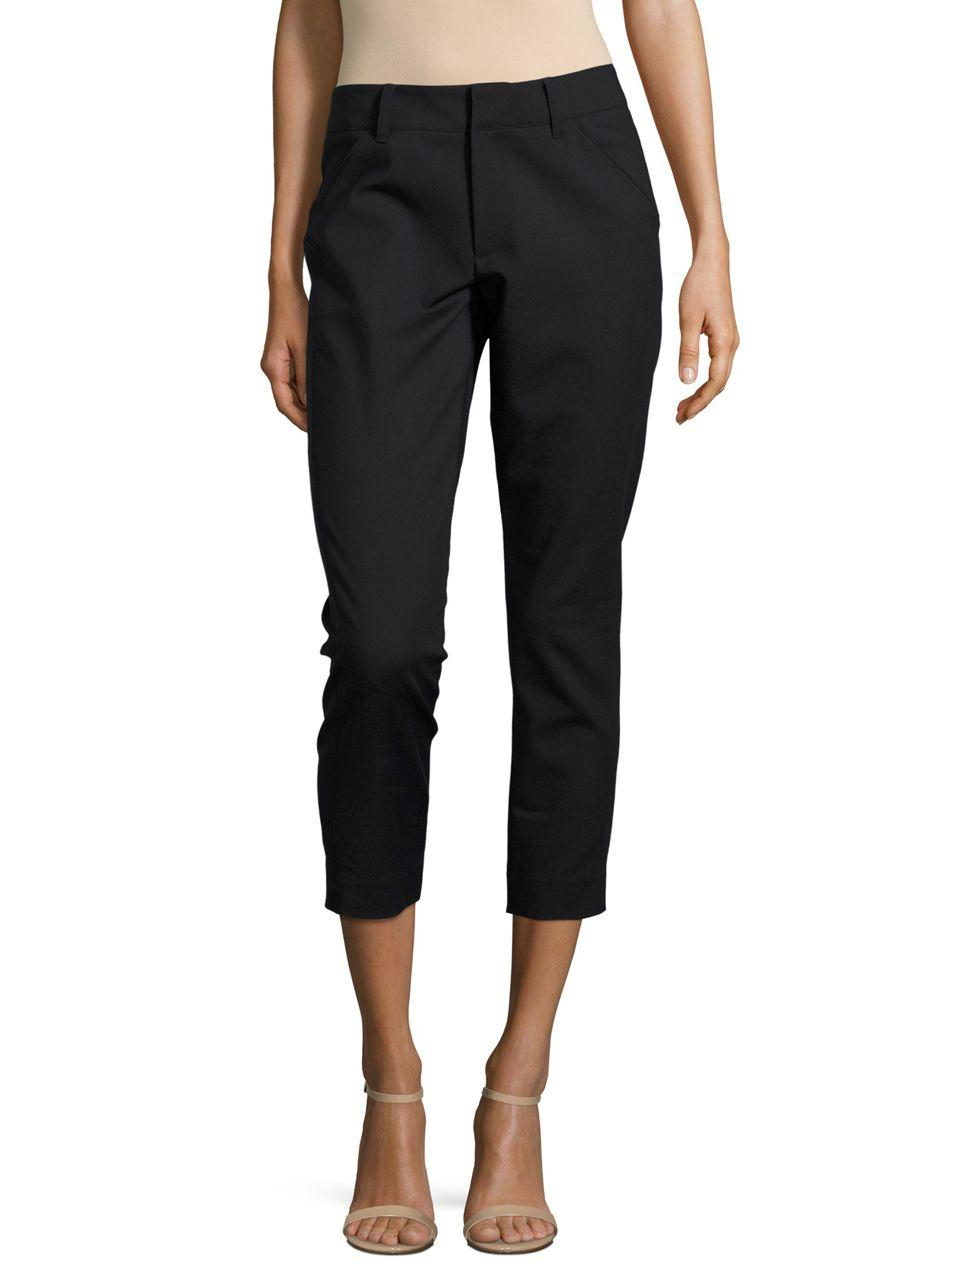 7a93ce7f4 17 Fresh Women'S Dress Pants 36 Inseam